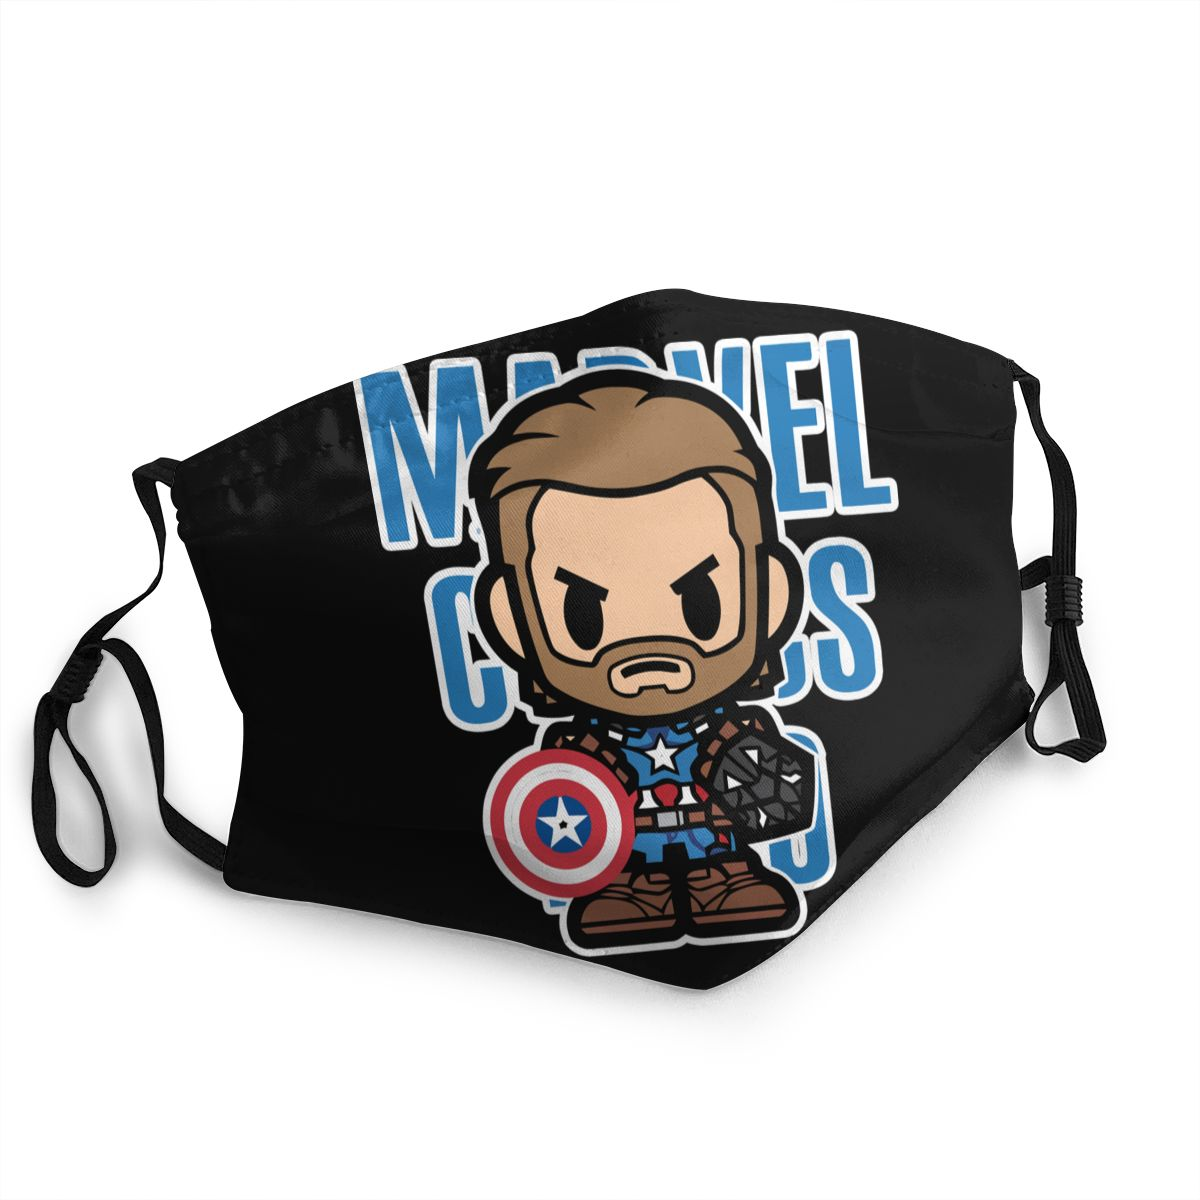 Captain America Non-Disposable Face Mask Printed Marvel The Avengers Anti Haze Dust Cold Protection Mask Respirator Muffle